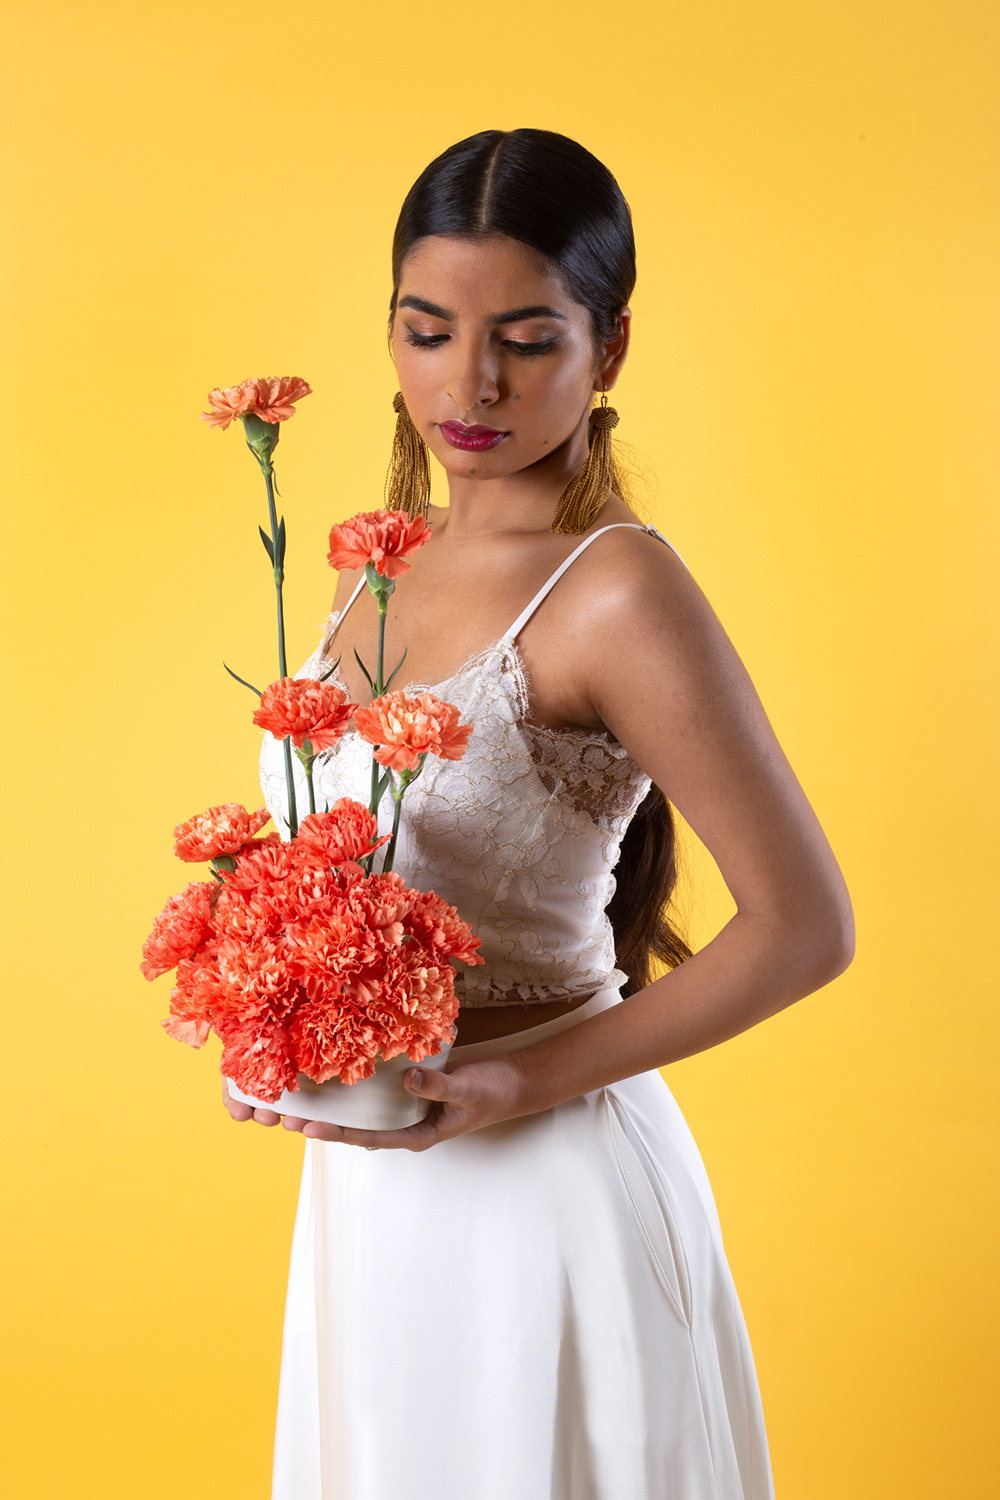 Modern Indian Inspired, untraditional, wedding styled shoot with house of ollichon bridal separates and carnation bouquet